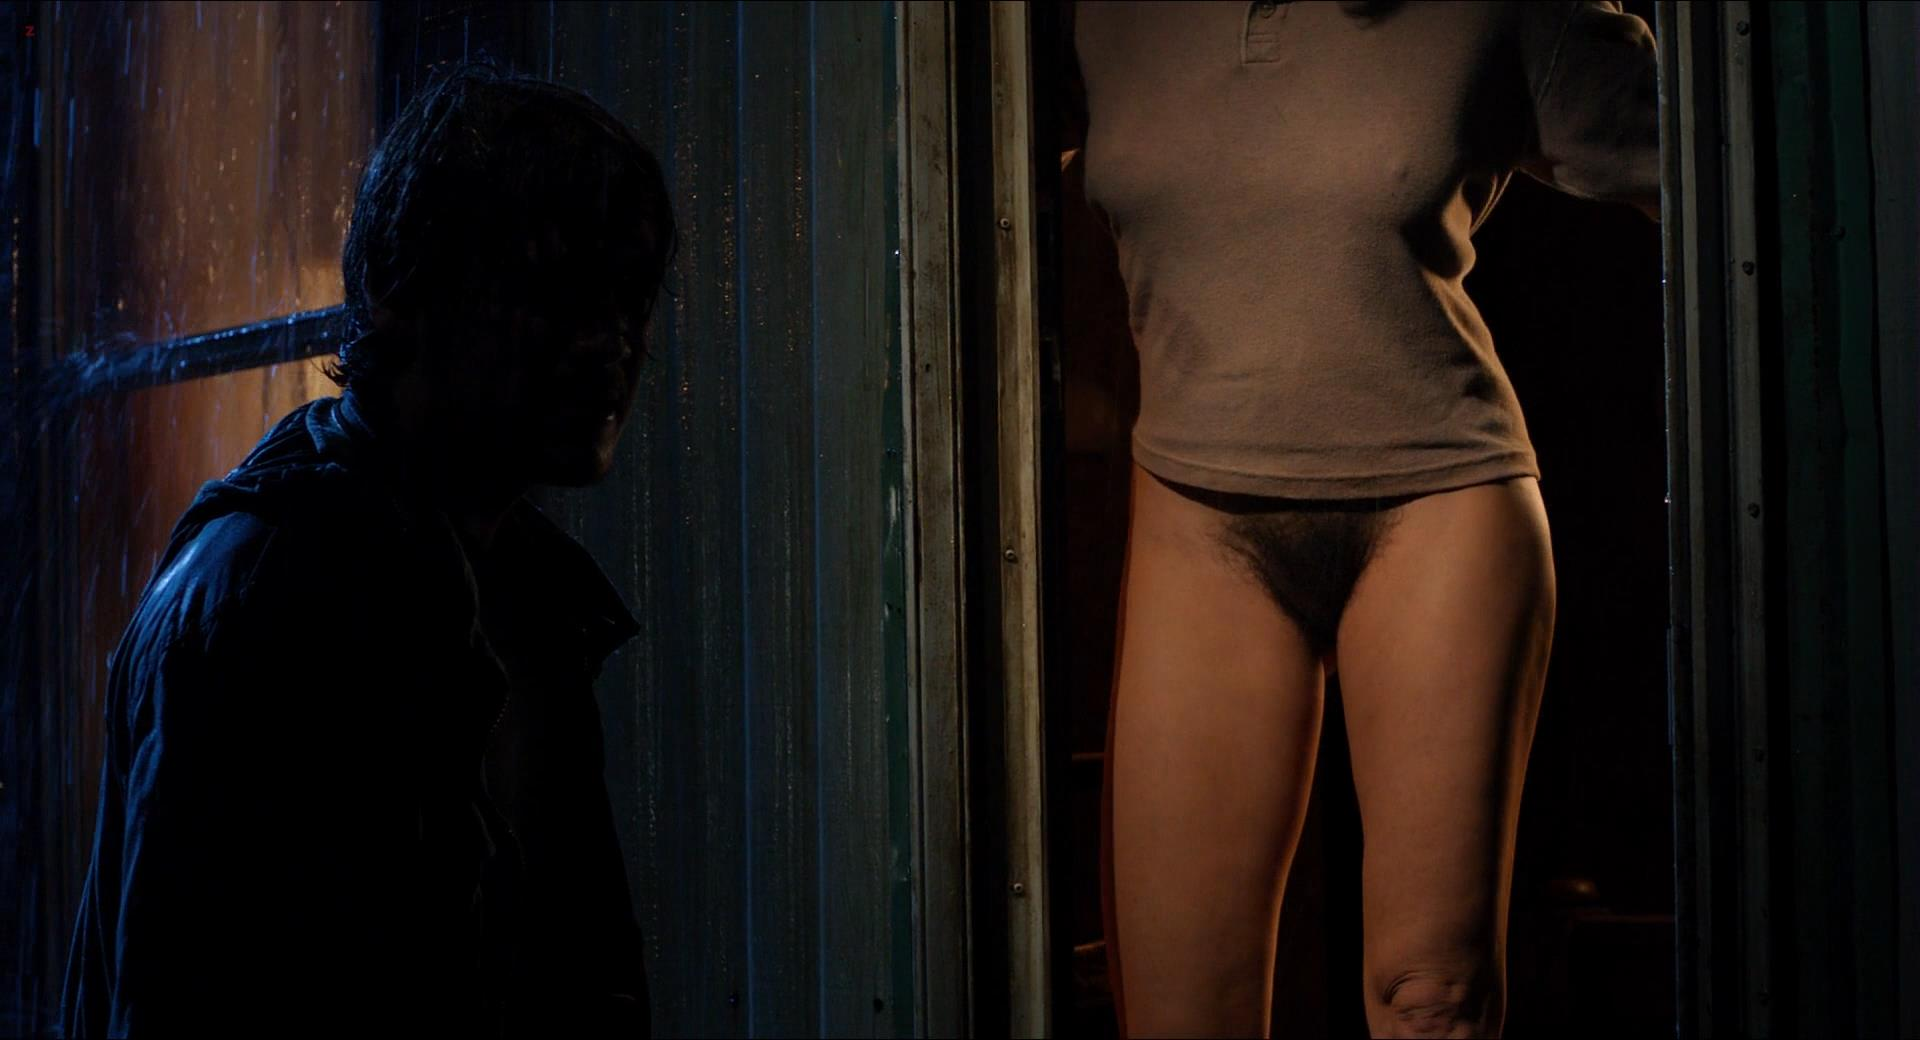 Killer joe 2011 juno temple 7